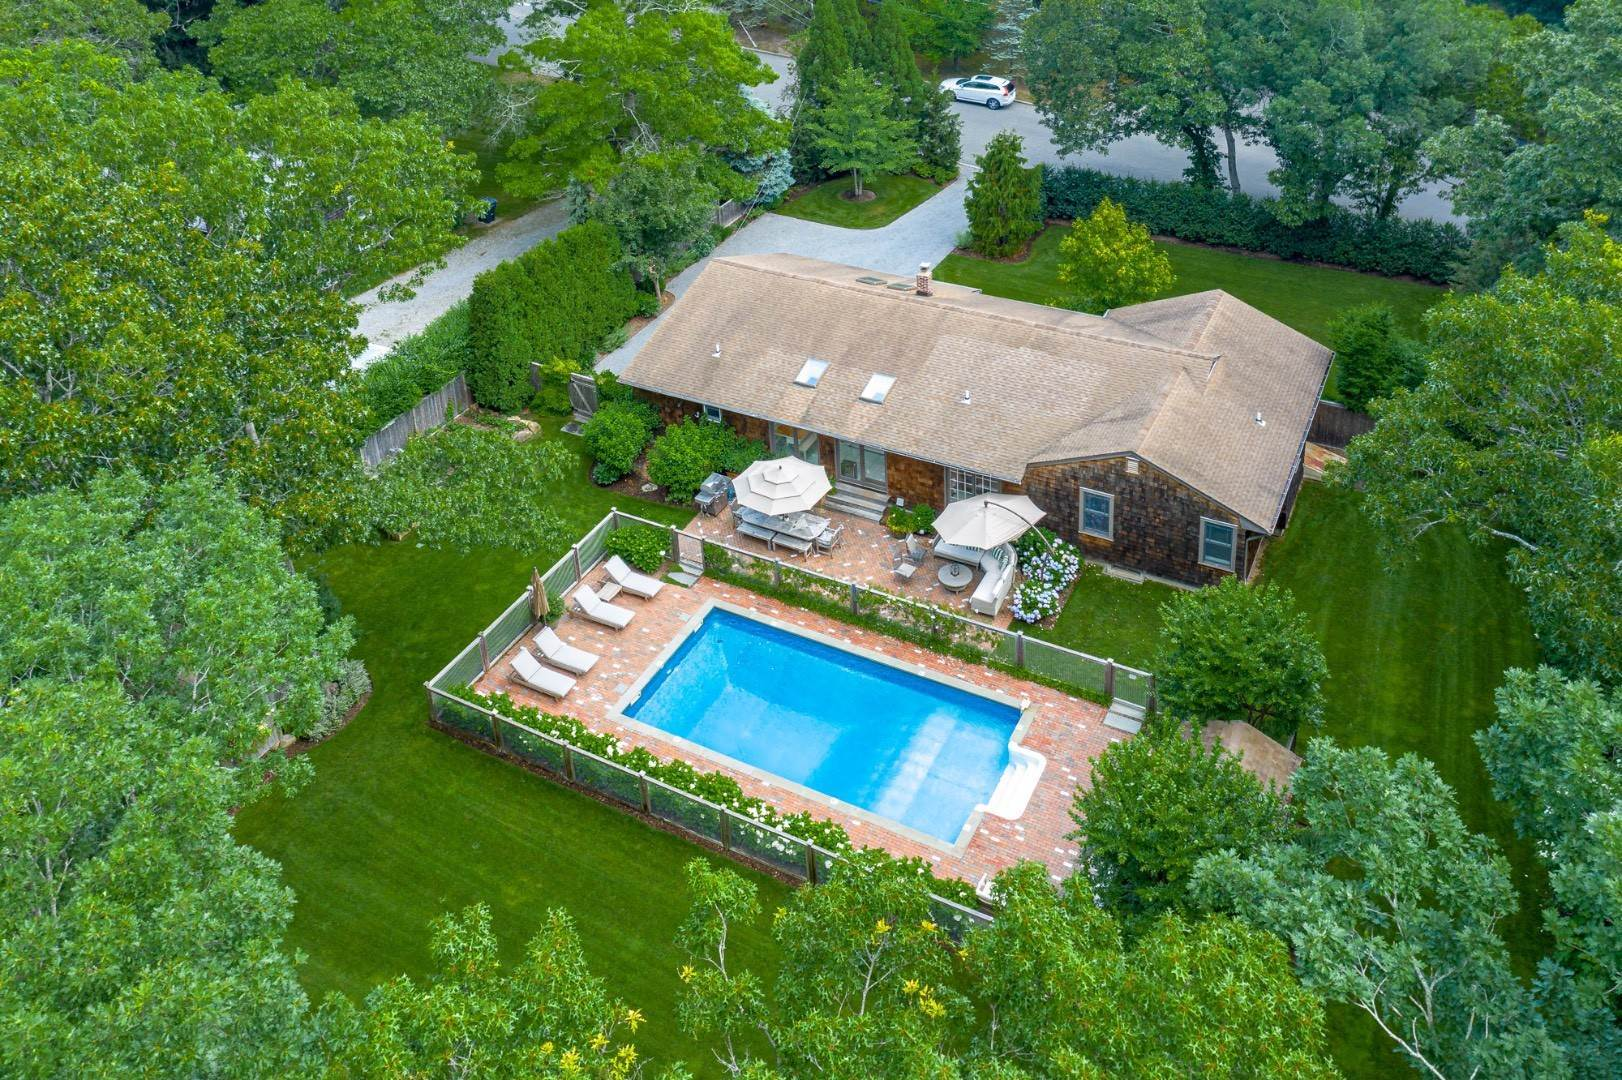 Single Family Home at Year Round In Sag Harbor With Hot Tub And Heated Pool 80 Denise Street, Sag Harbor South, NY 11963